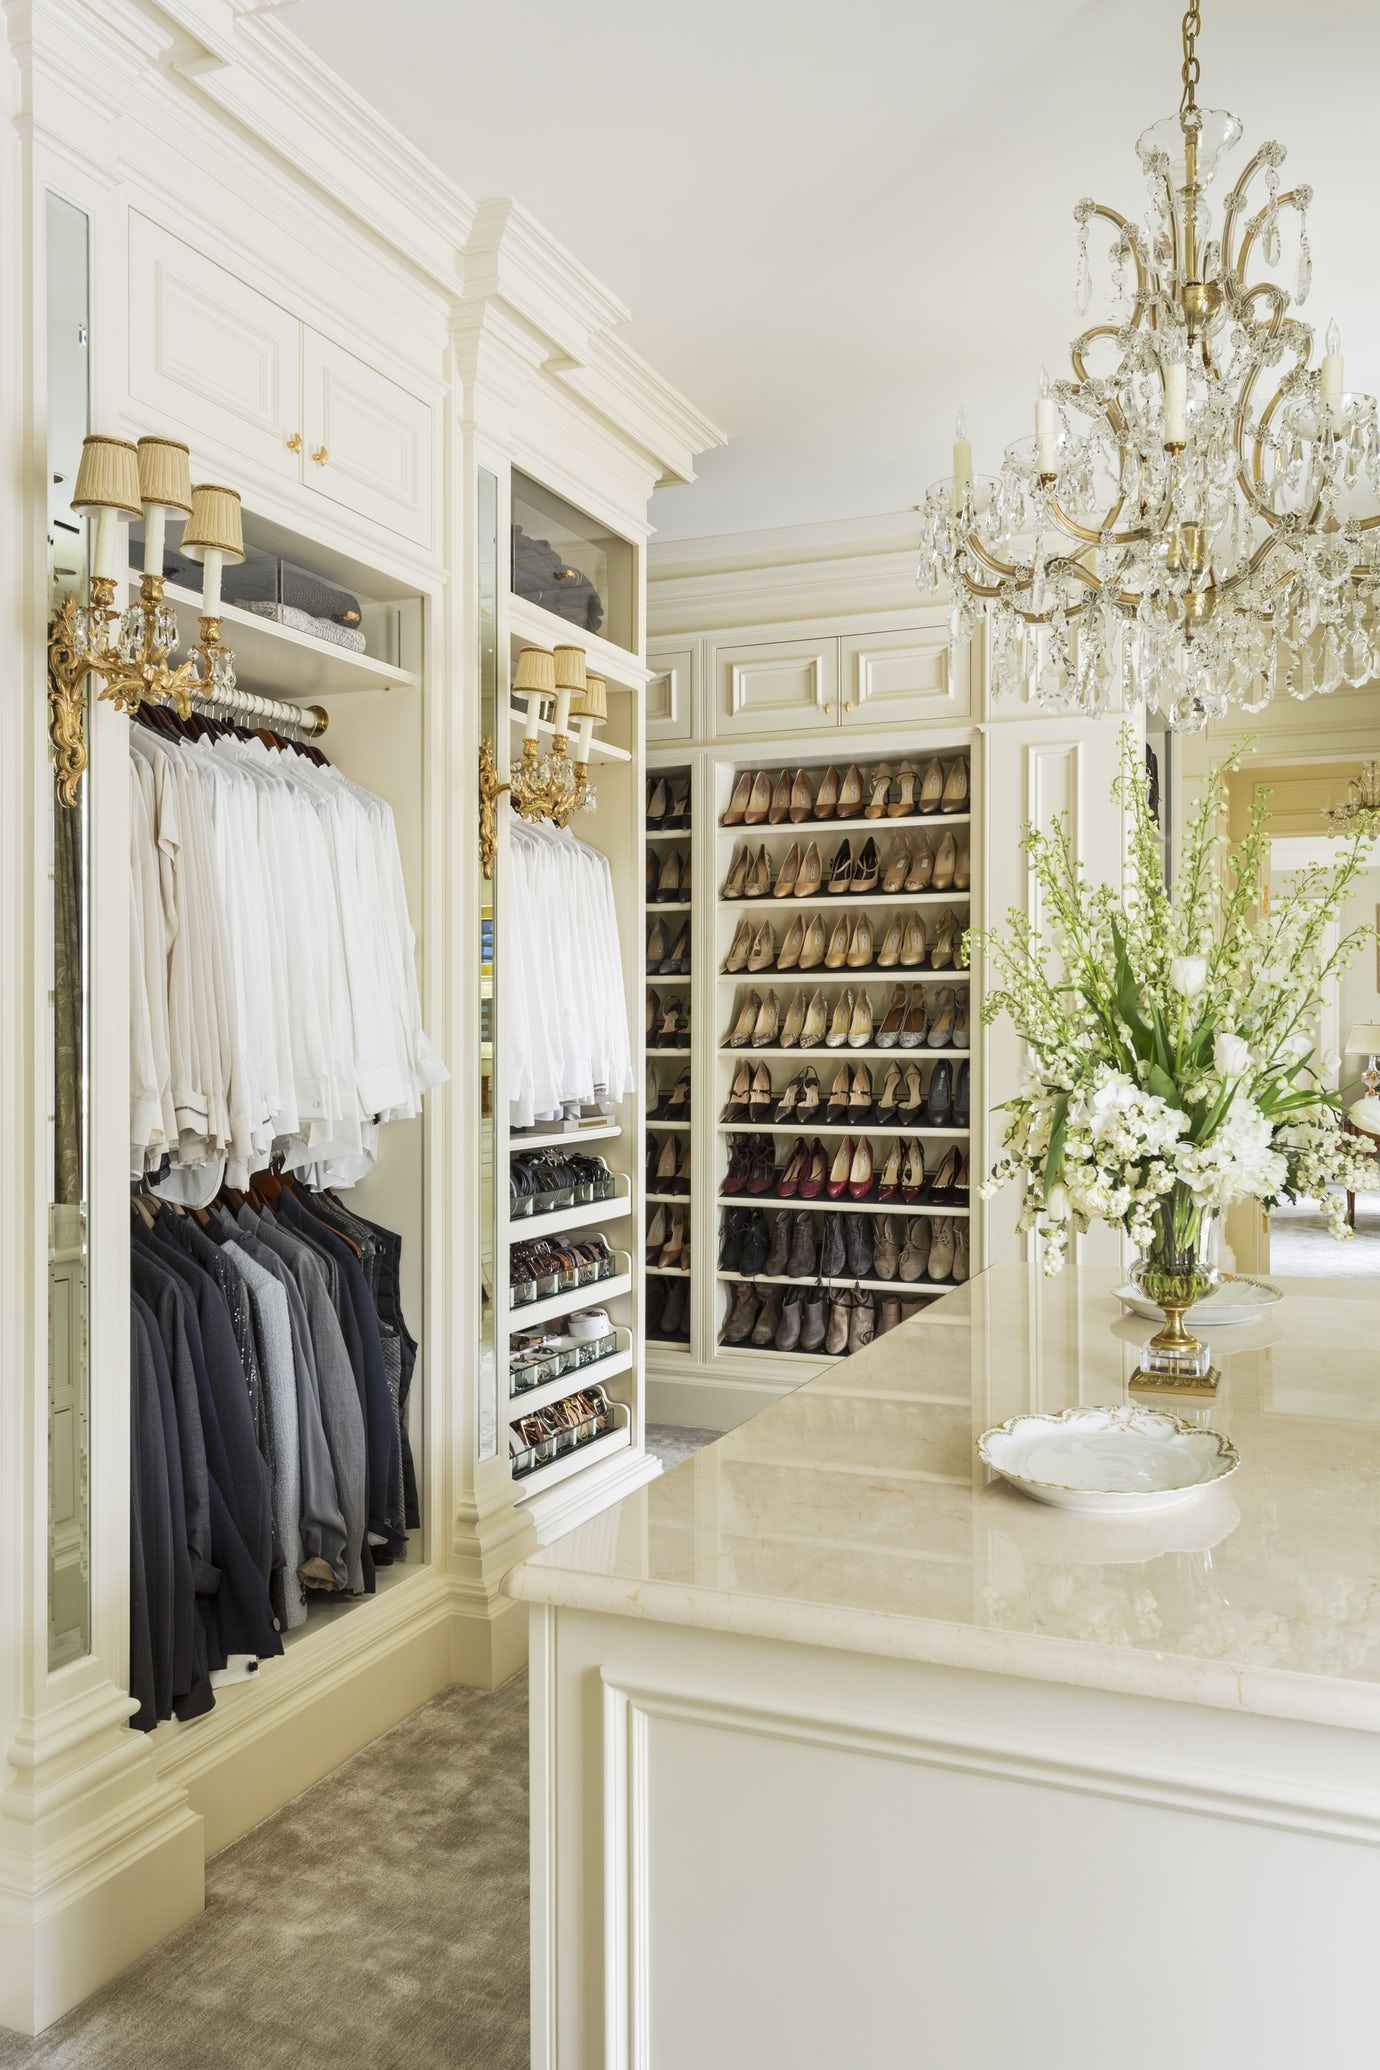 Luxury Cream Dressing Room With Leatherlined Shoe Shelves And